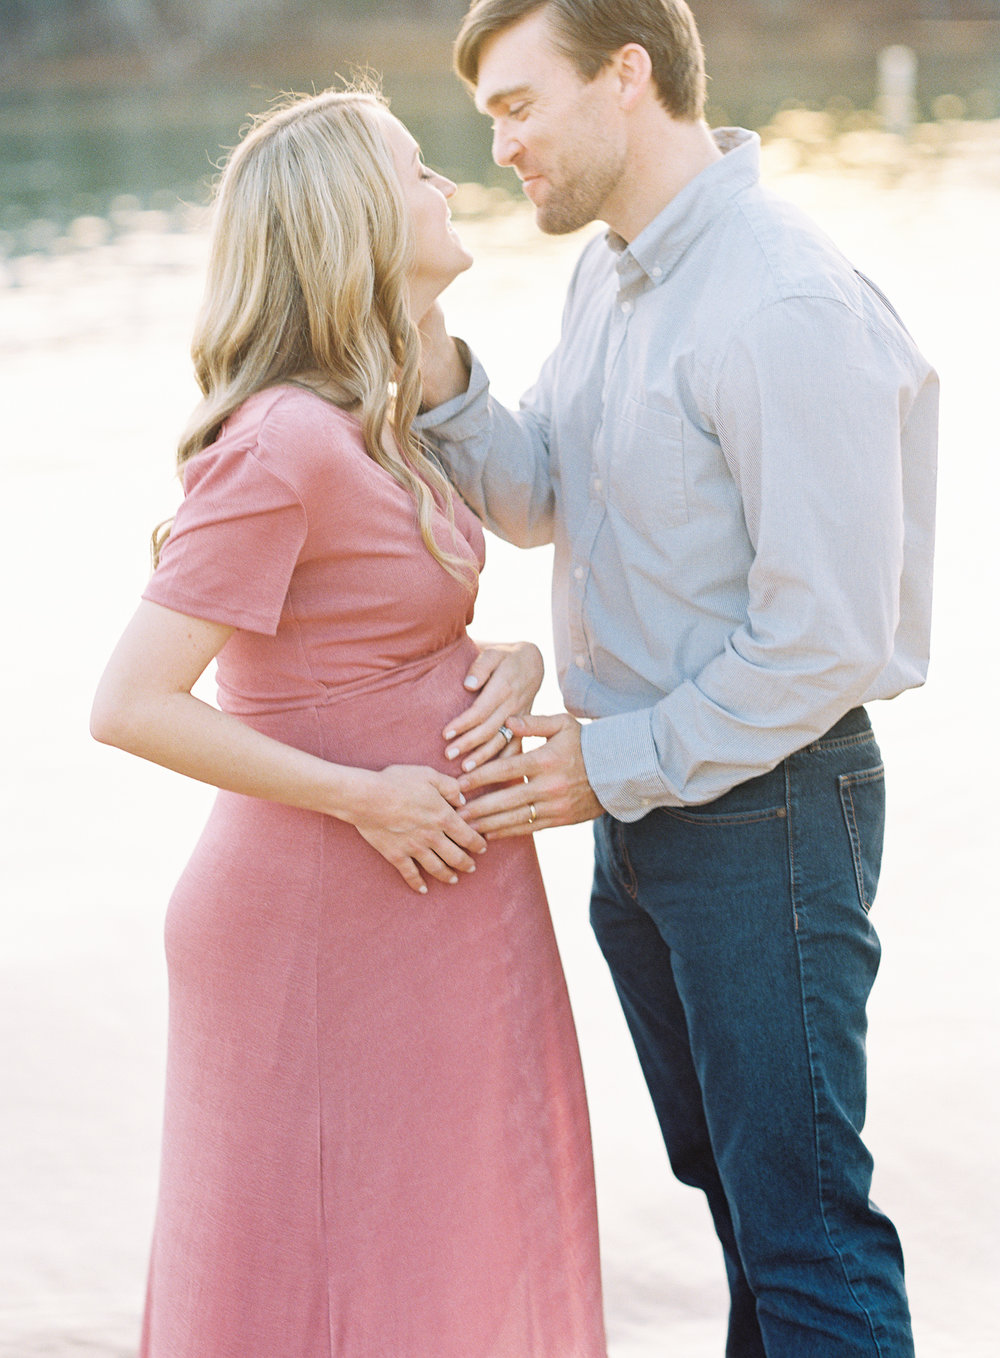 Atlanta maternity photography film fine art